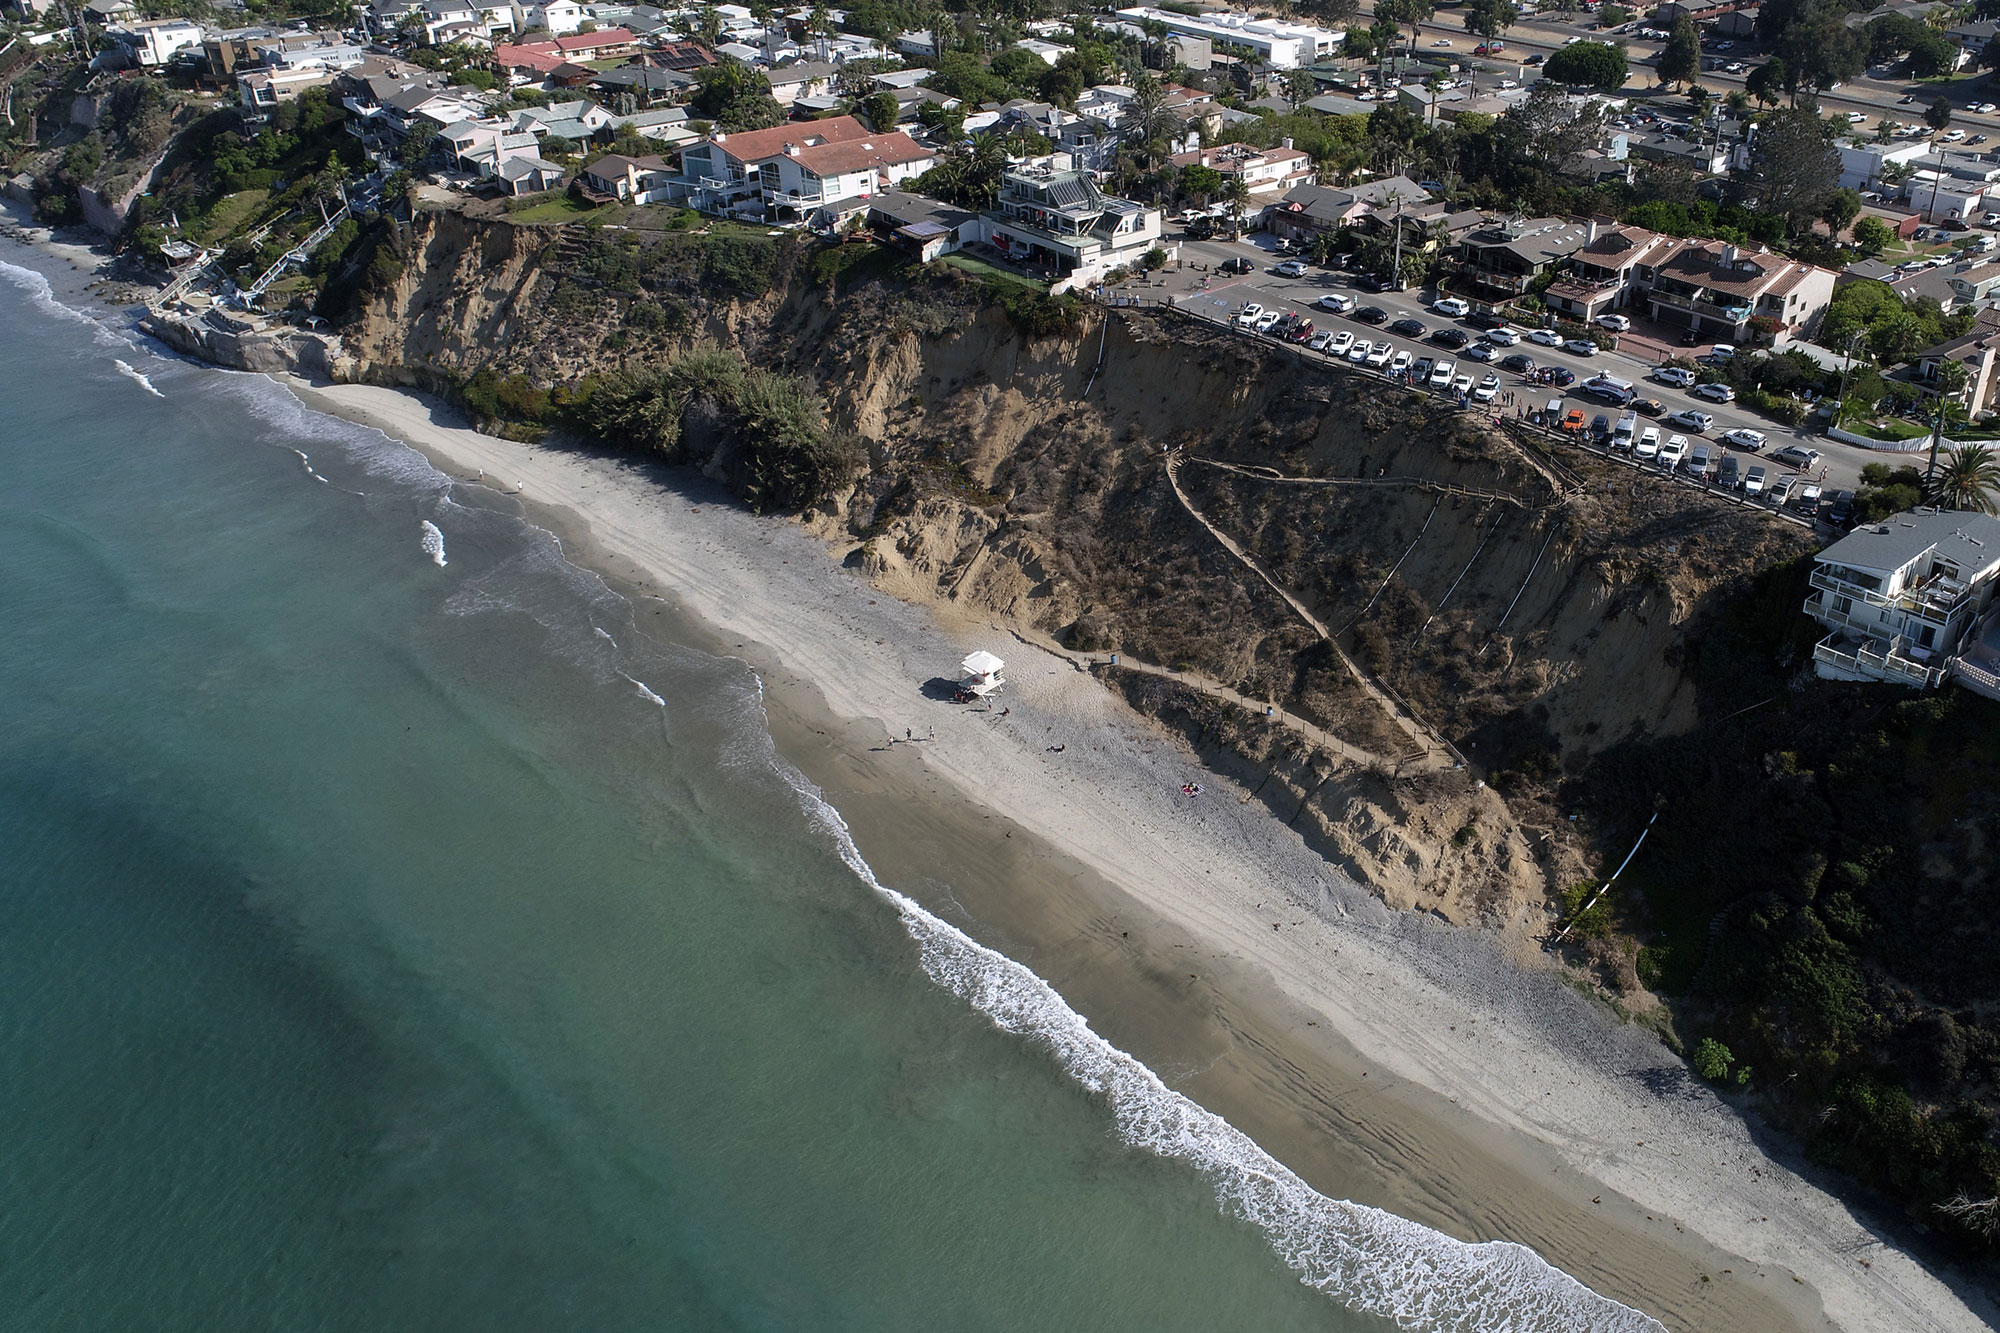 Teenage Boy Attacked by Shark at Southern California Beach